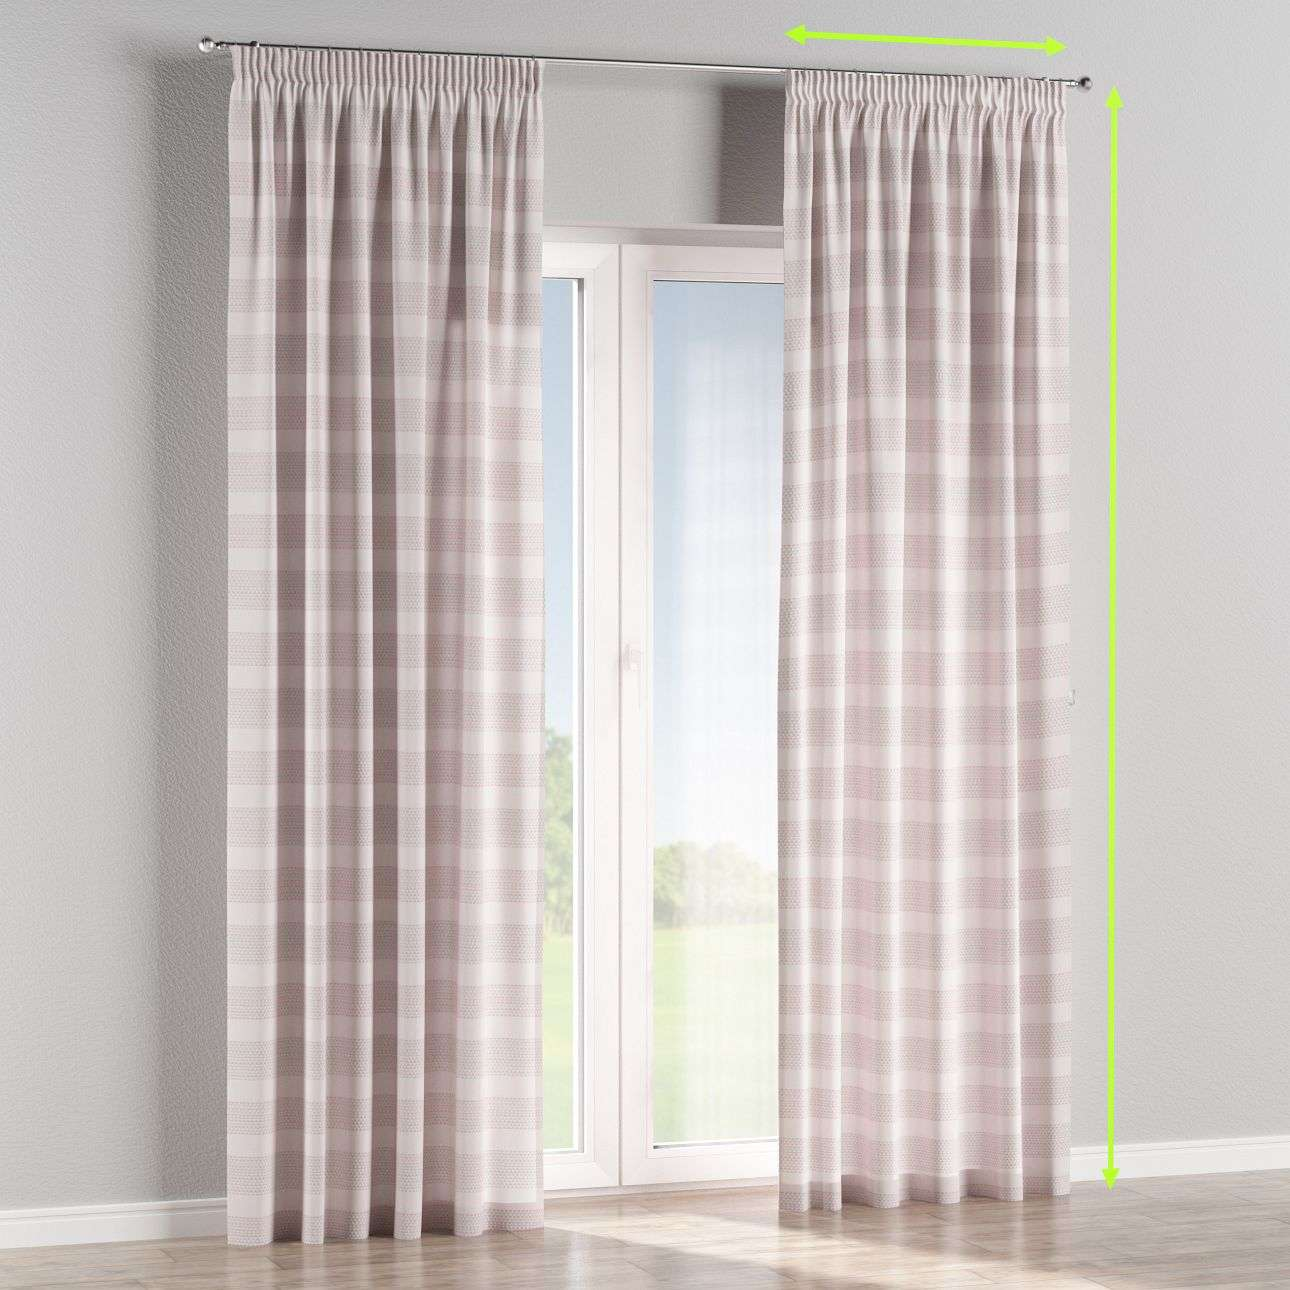 Pencil pleat curtains in collection Rustica, fabric: 140-29